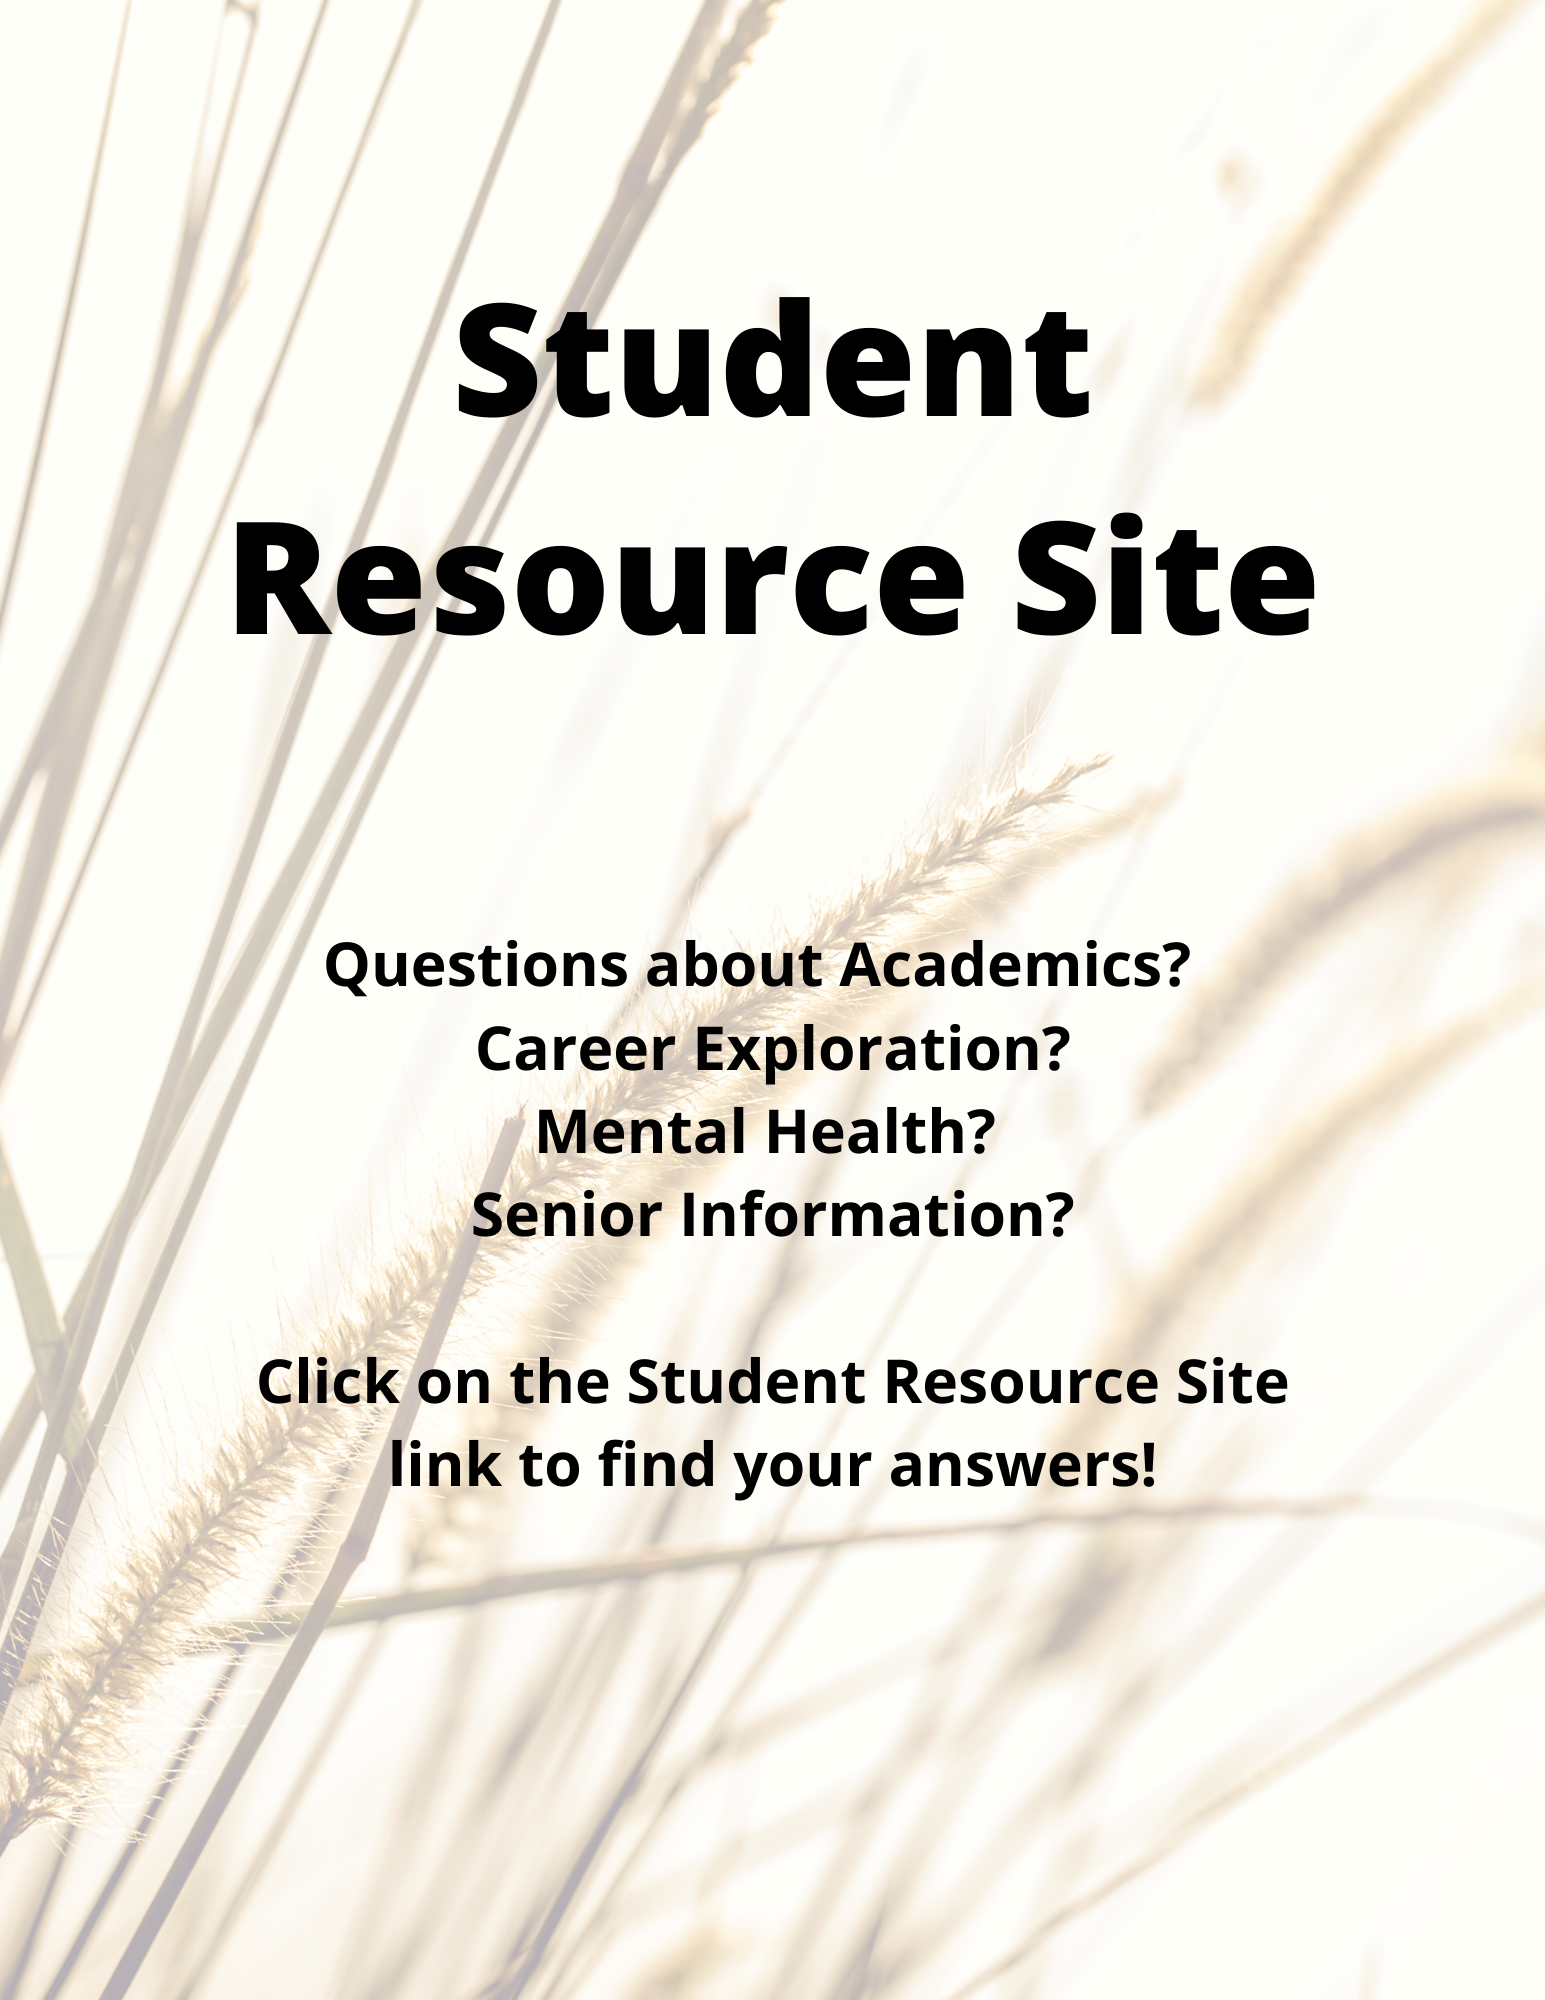 Student Resource Site